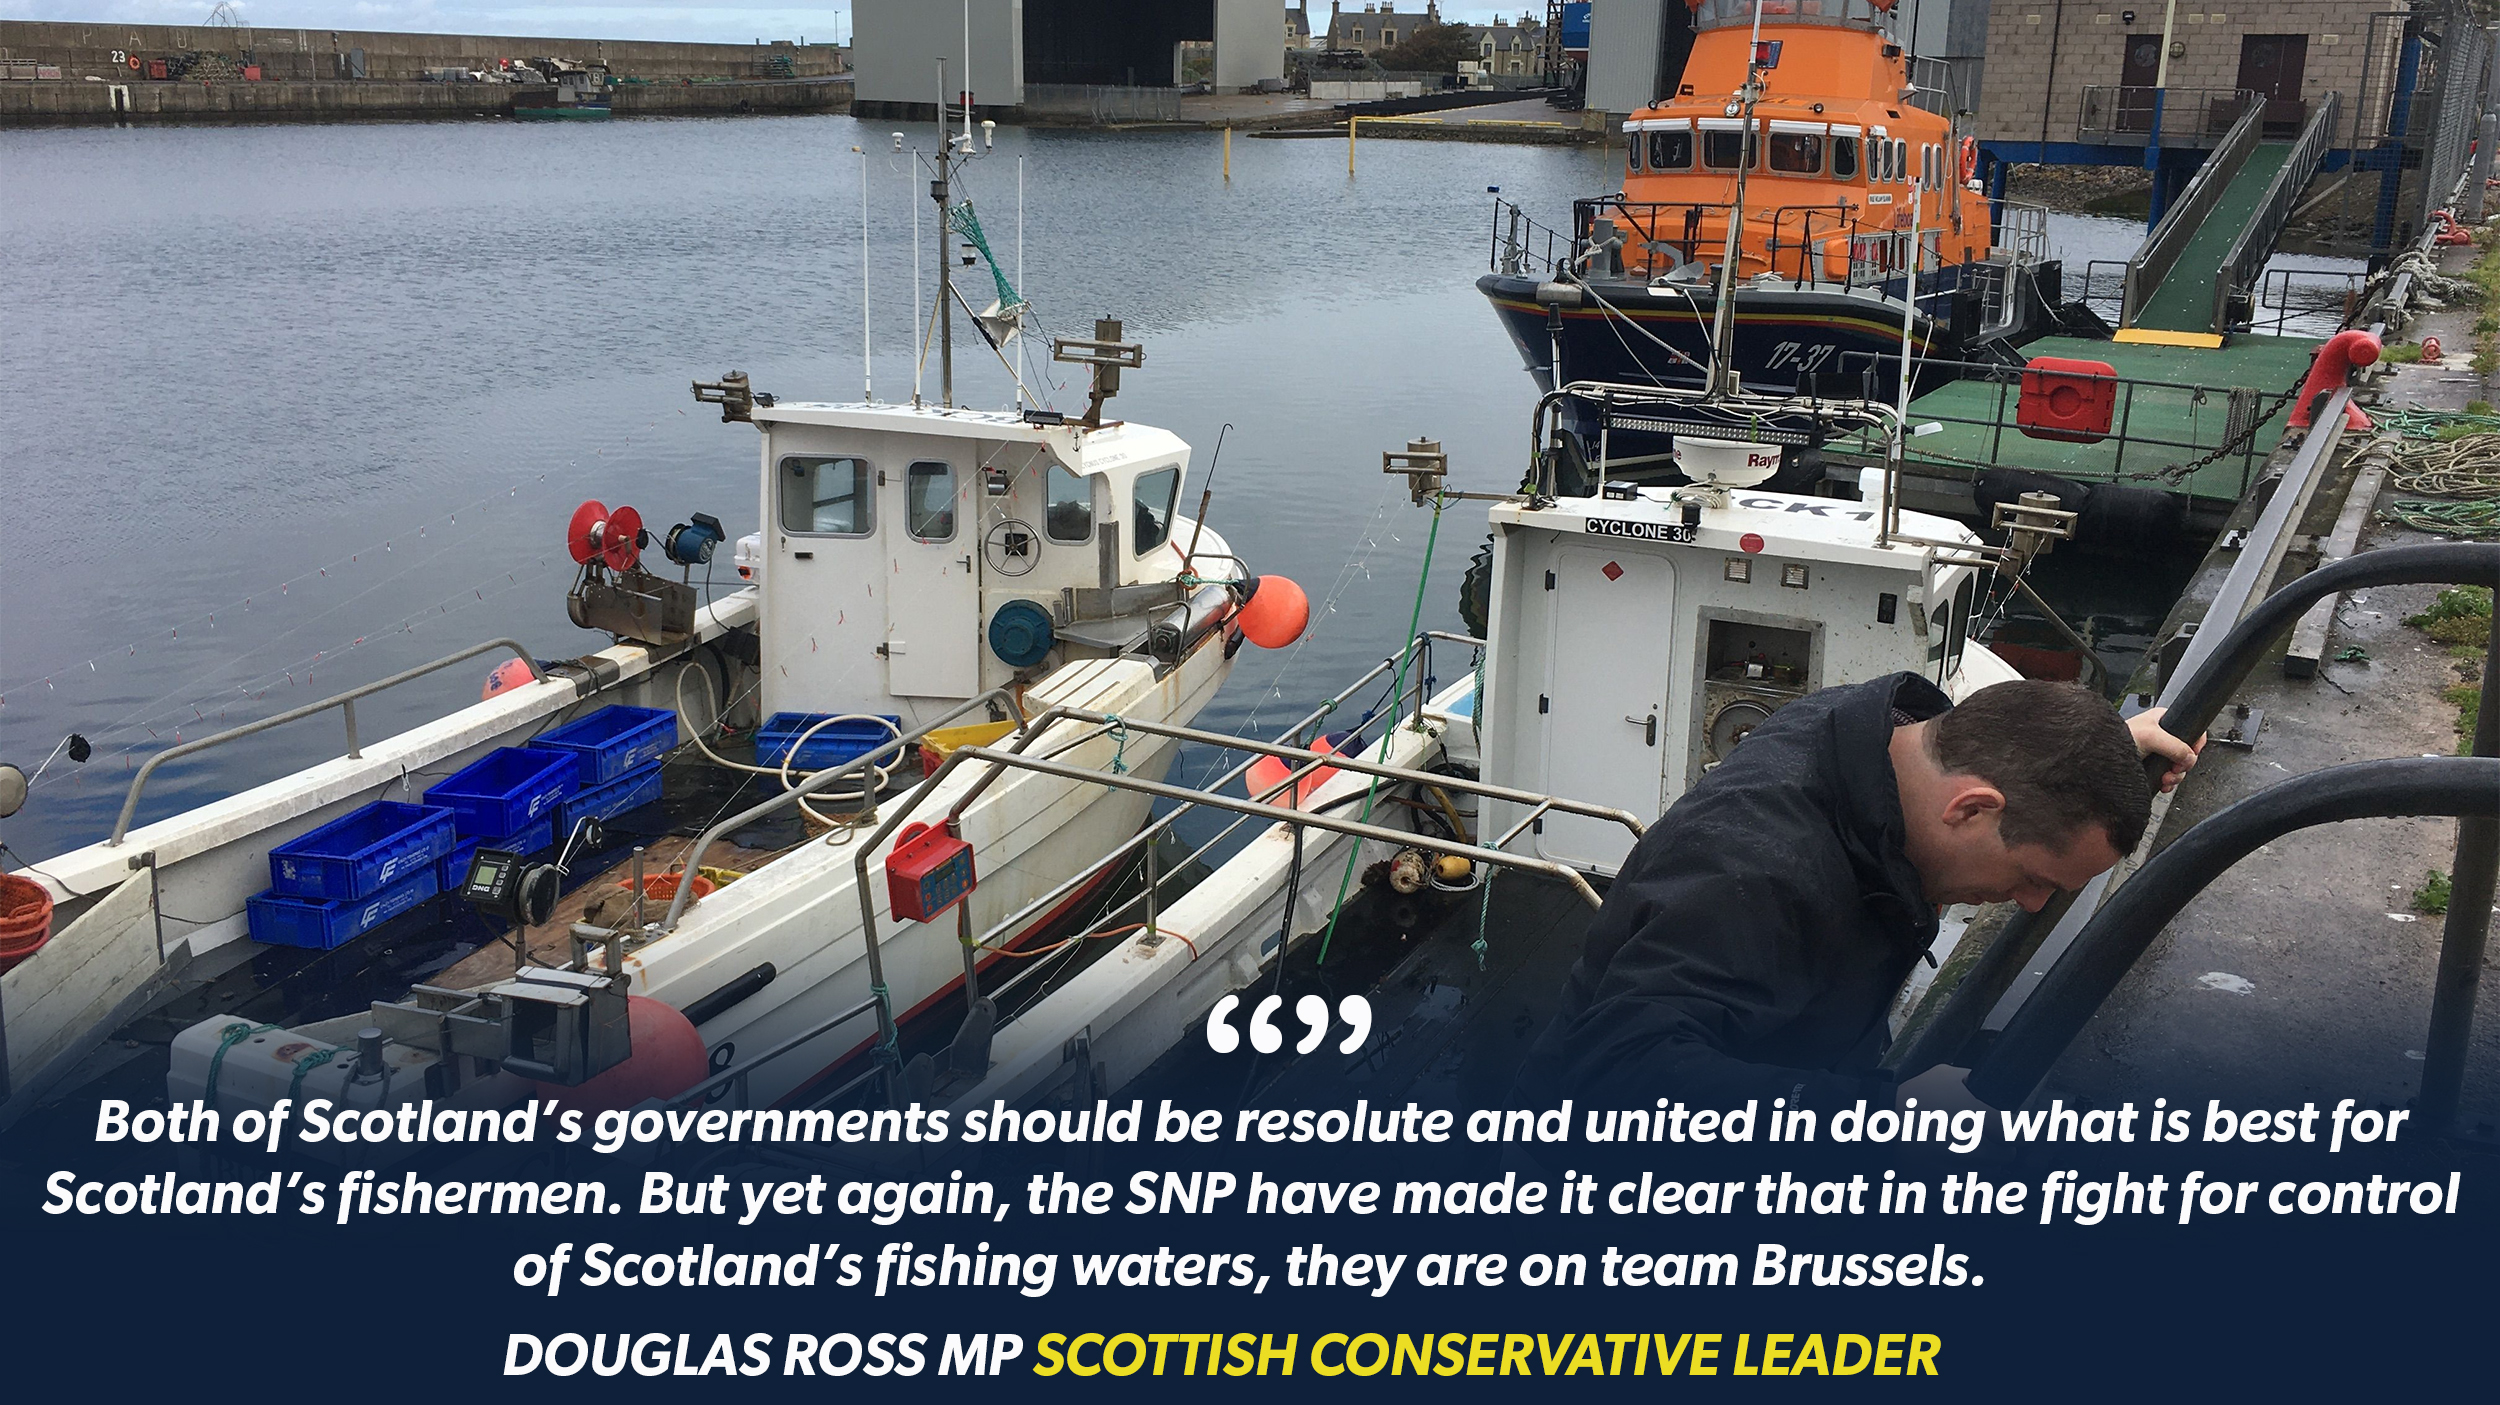 Scottish Conservative leader, Douglas Ross MP has accused the SNP of betraying the Scottish fishing industry by backing EU in Brexit talks